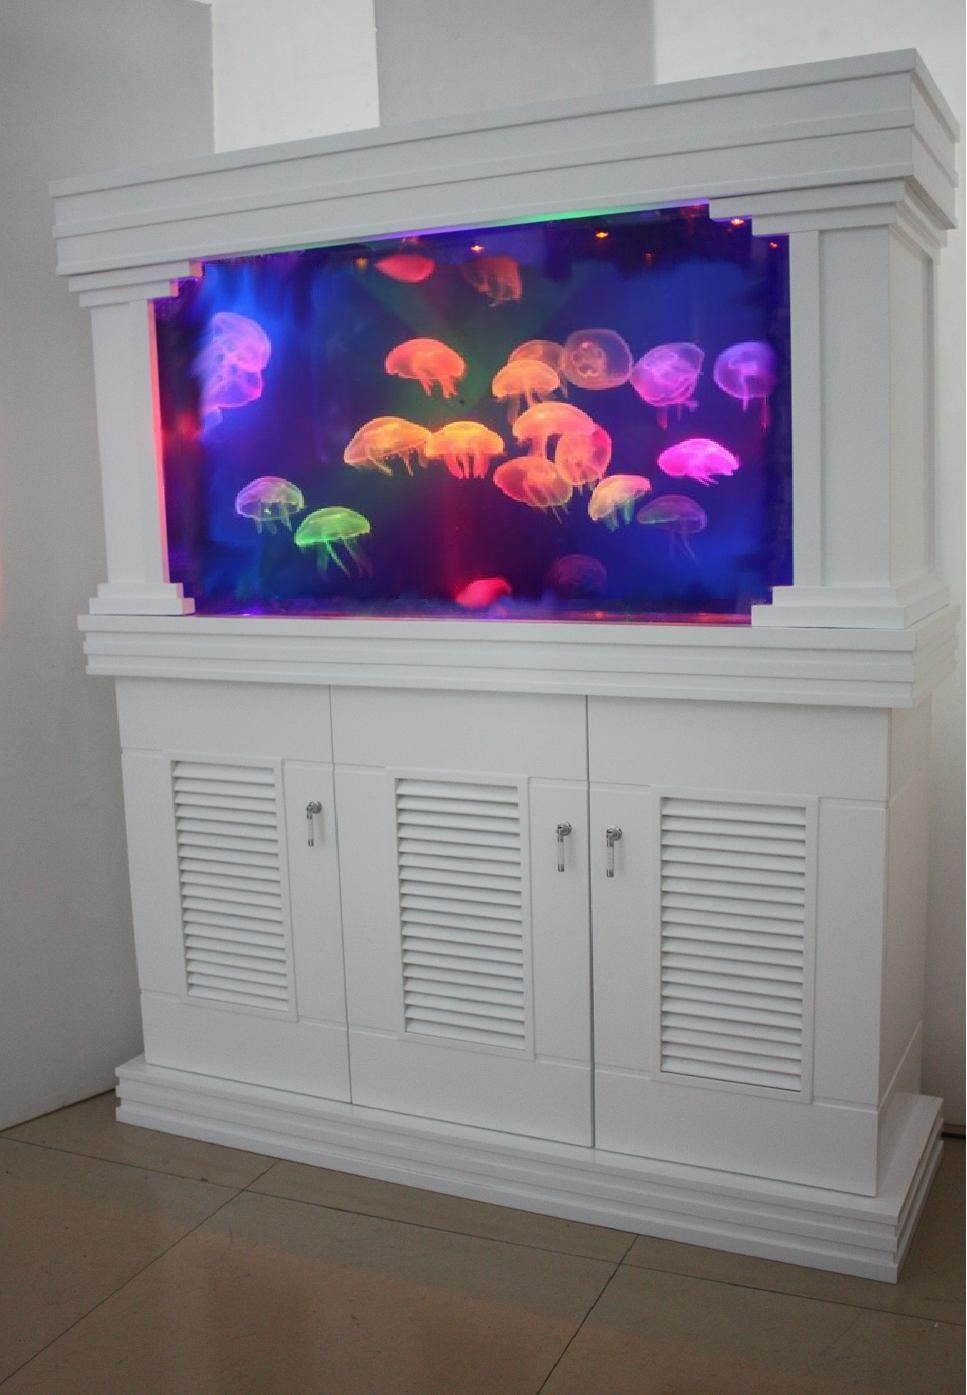 Fish tank in kitchen -  Geometric Fish Tank When I Own A Home I Want A Giant Fish Tank Installed Somewhere Here Fishy Fishy Pinterest Colorful Fish Home Aquarium And